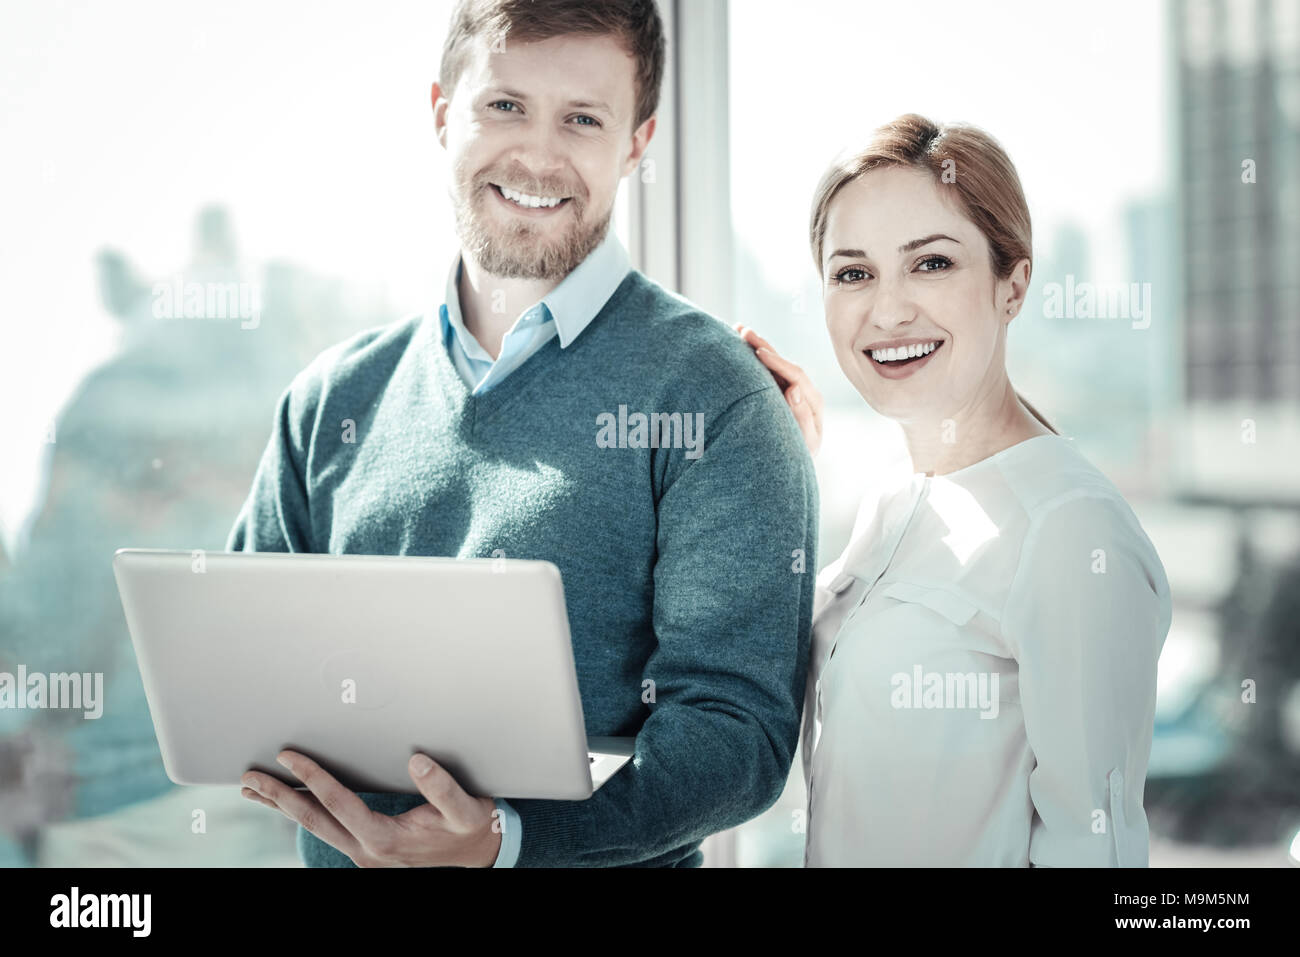 Pleasant responsible colleagues standing and smiling. - Stock Image